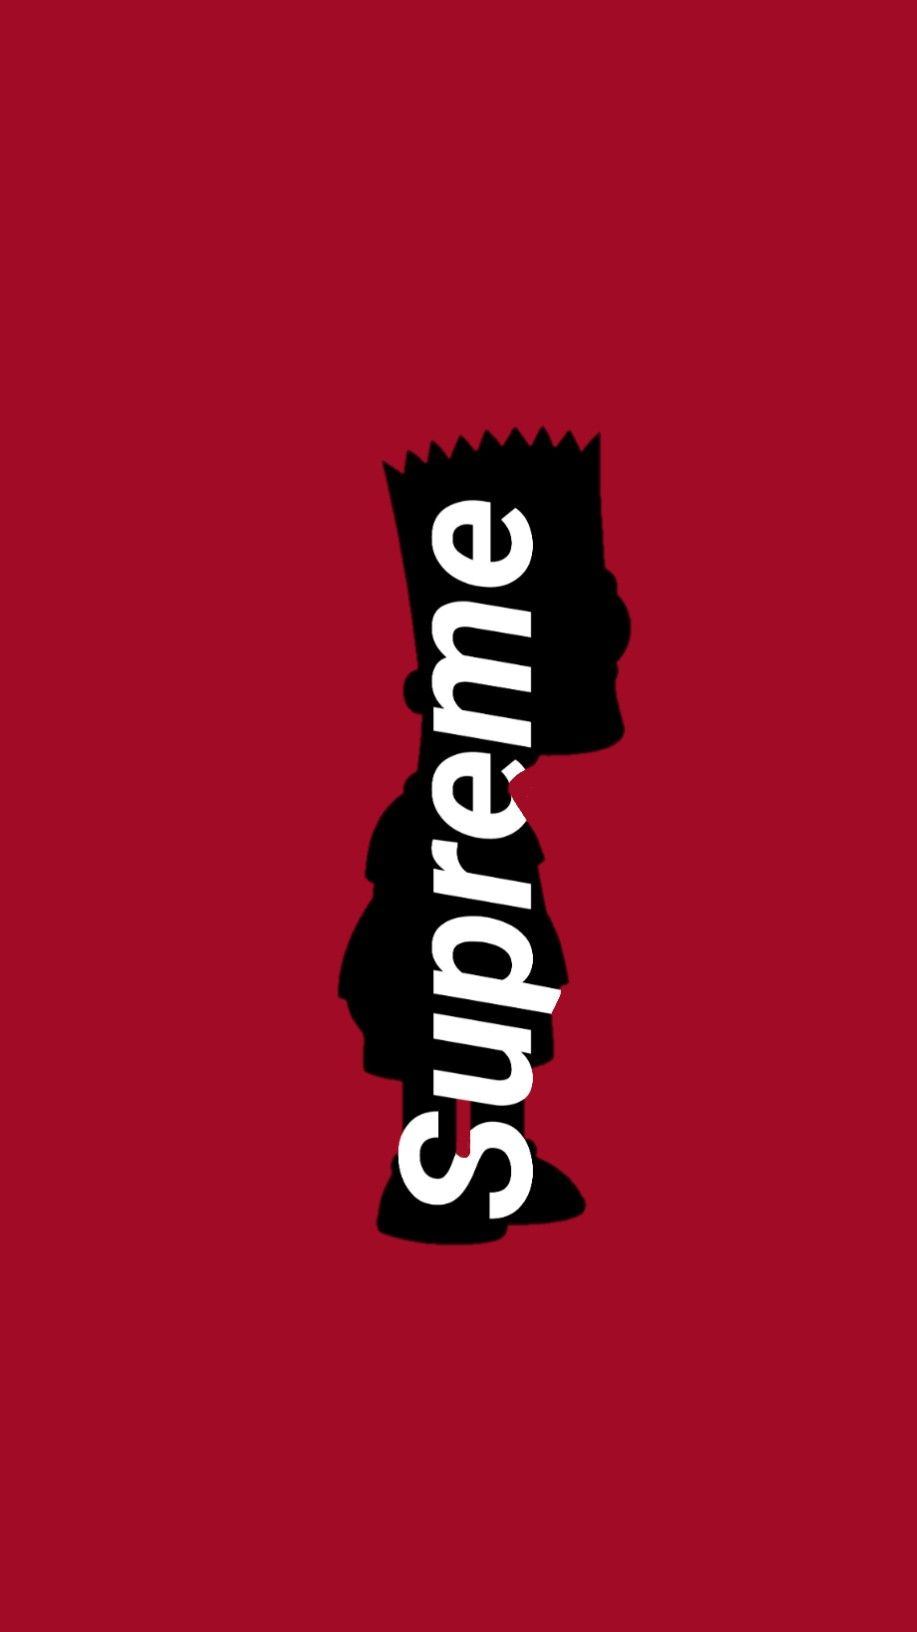 Free Download Supreme Bart Wallpaper In 2019 Hypebeast